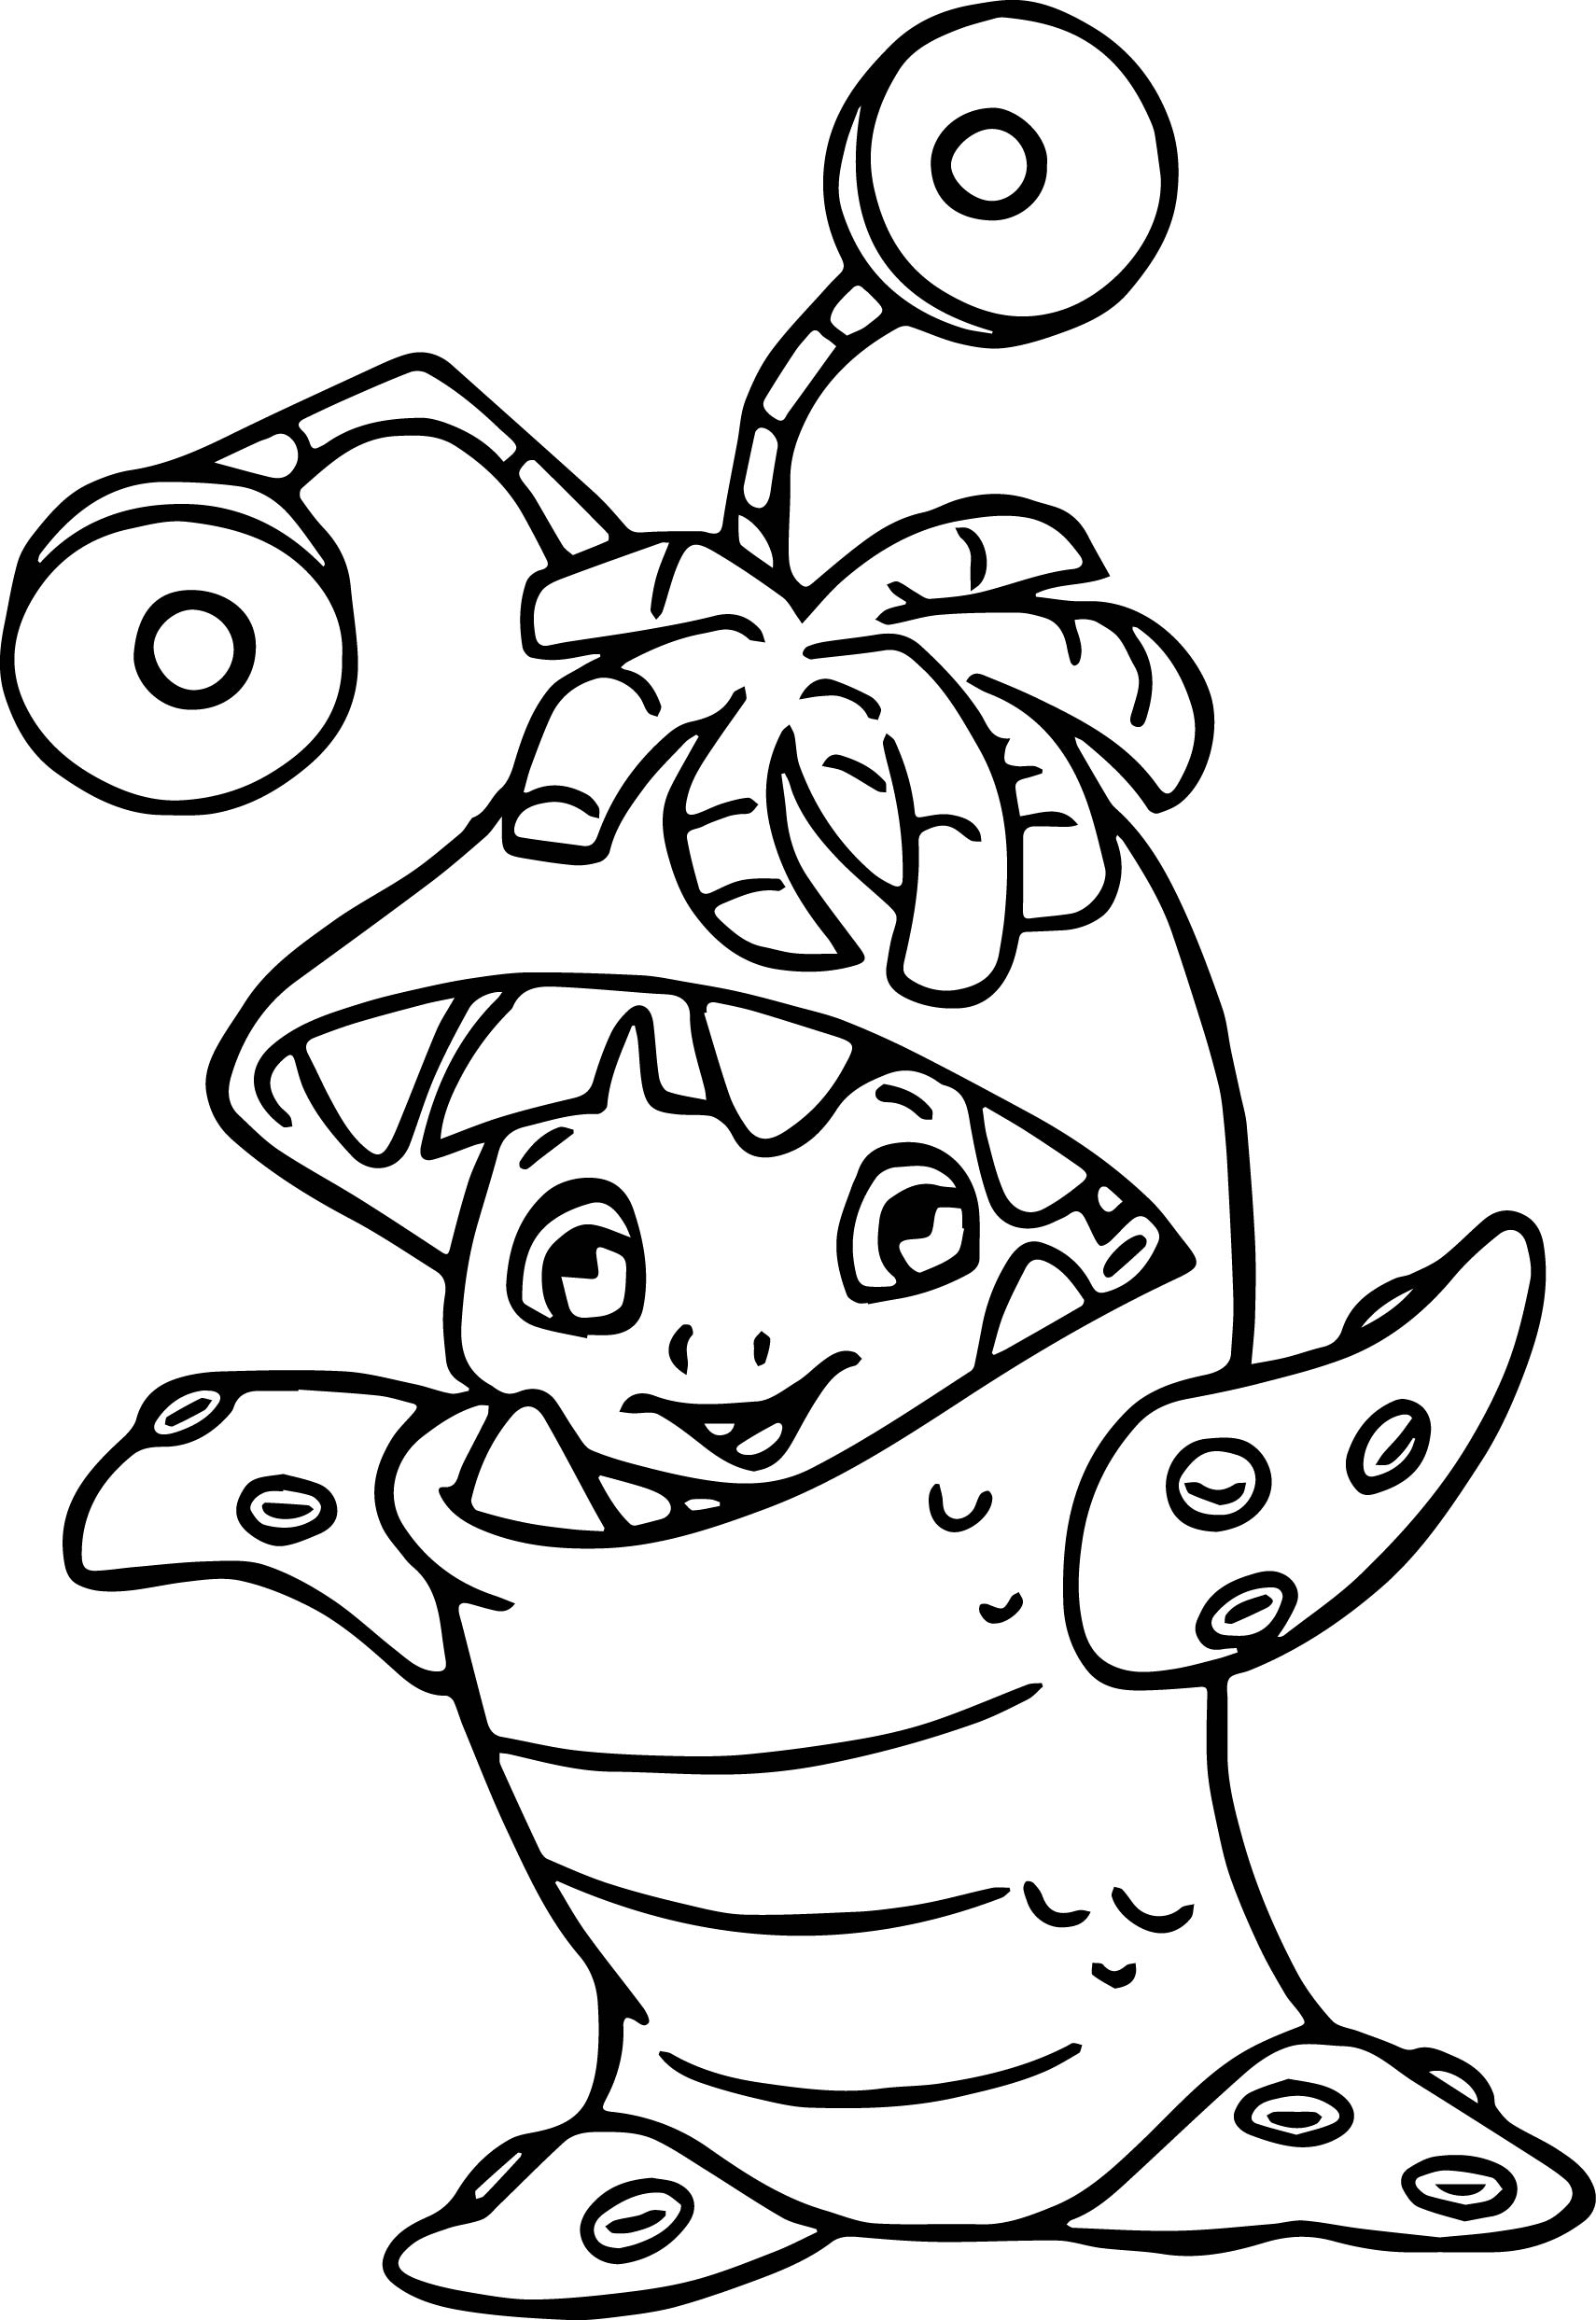 Disney monsters inc coloring pages for Monster coloring pages